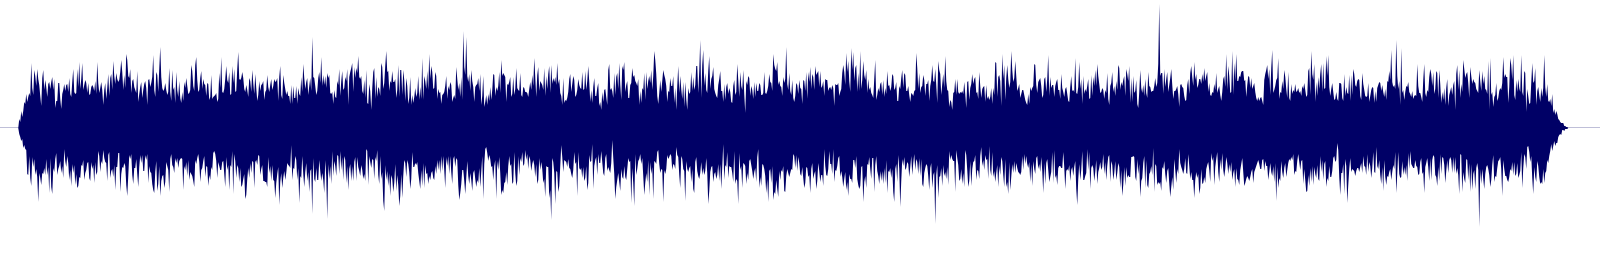 waveform of track #148924